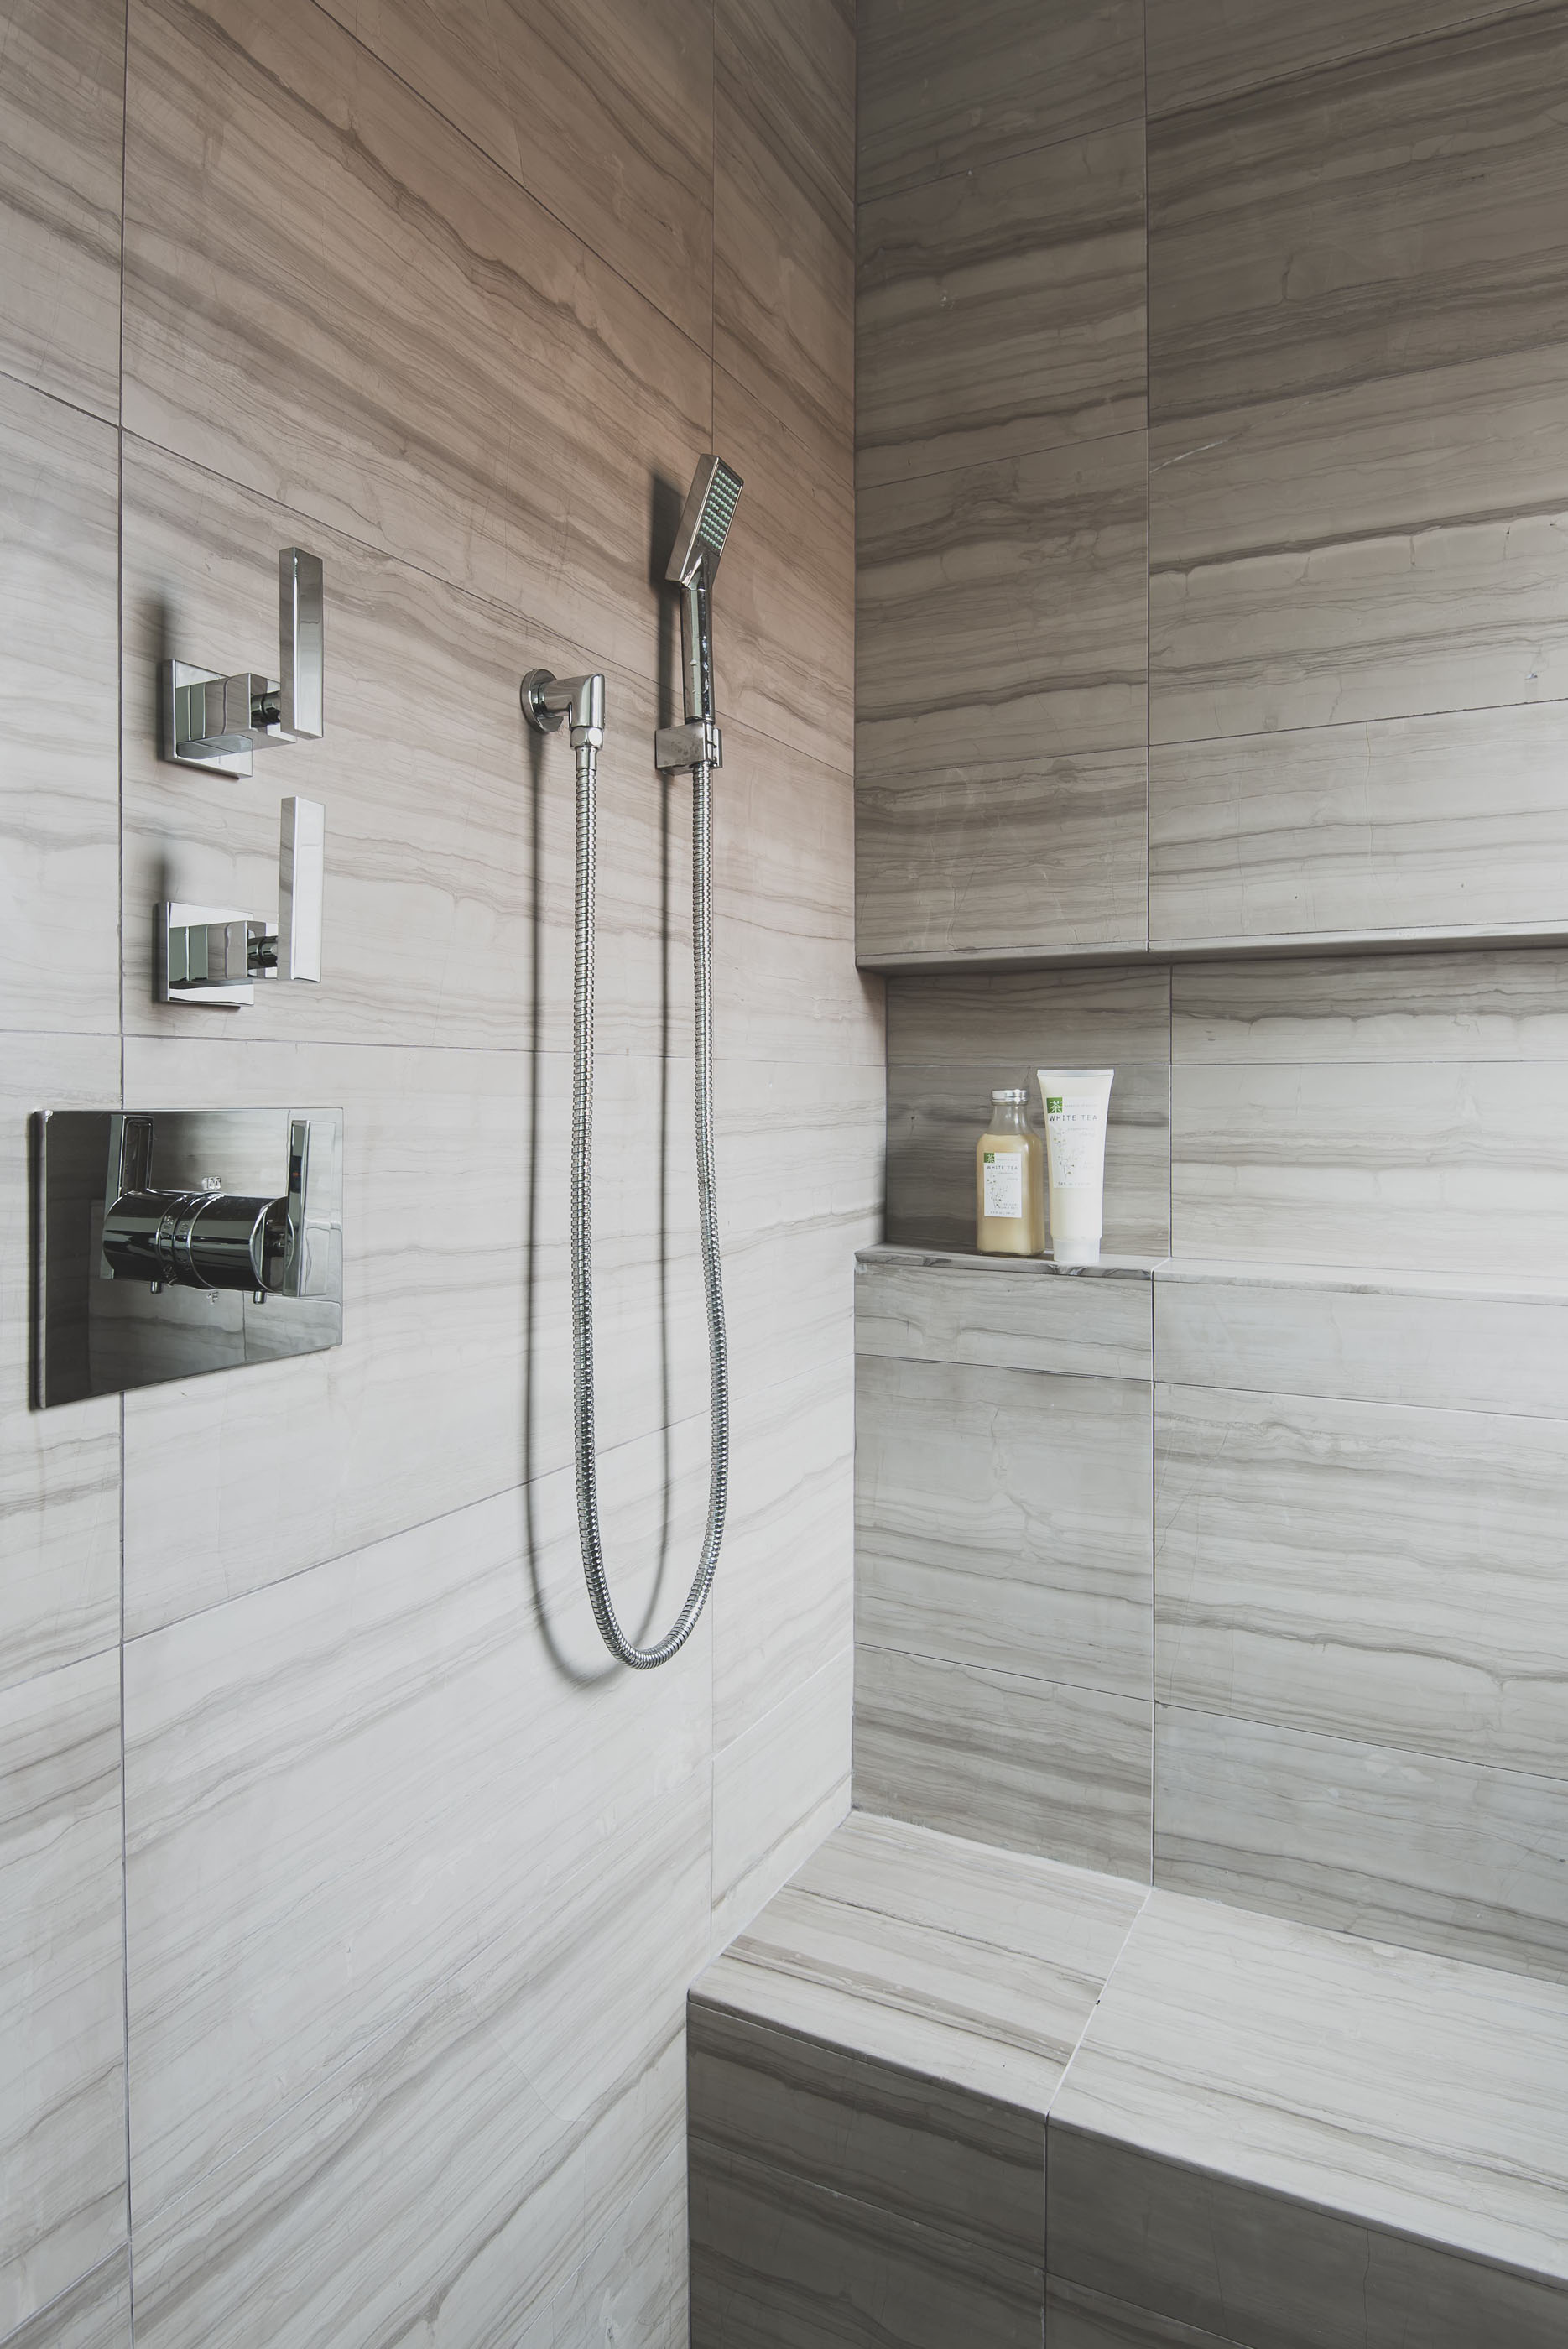 Silver Travertine Bathroom Images Image Of And Closet